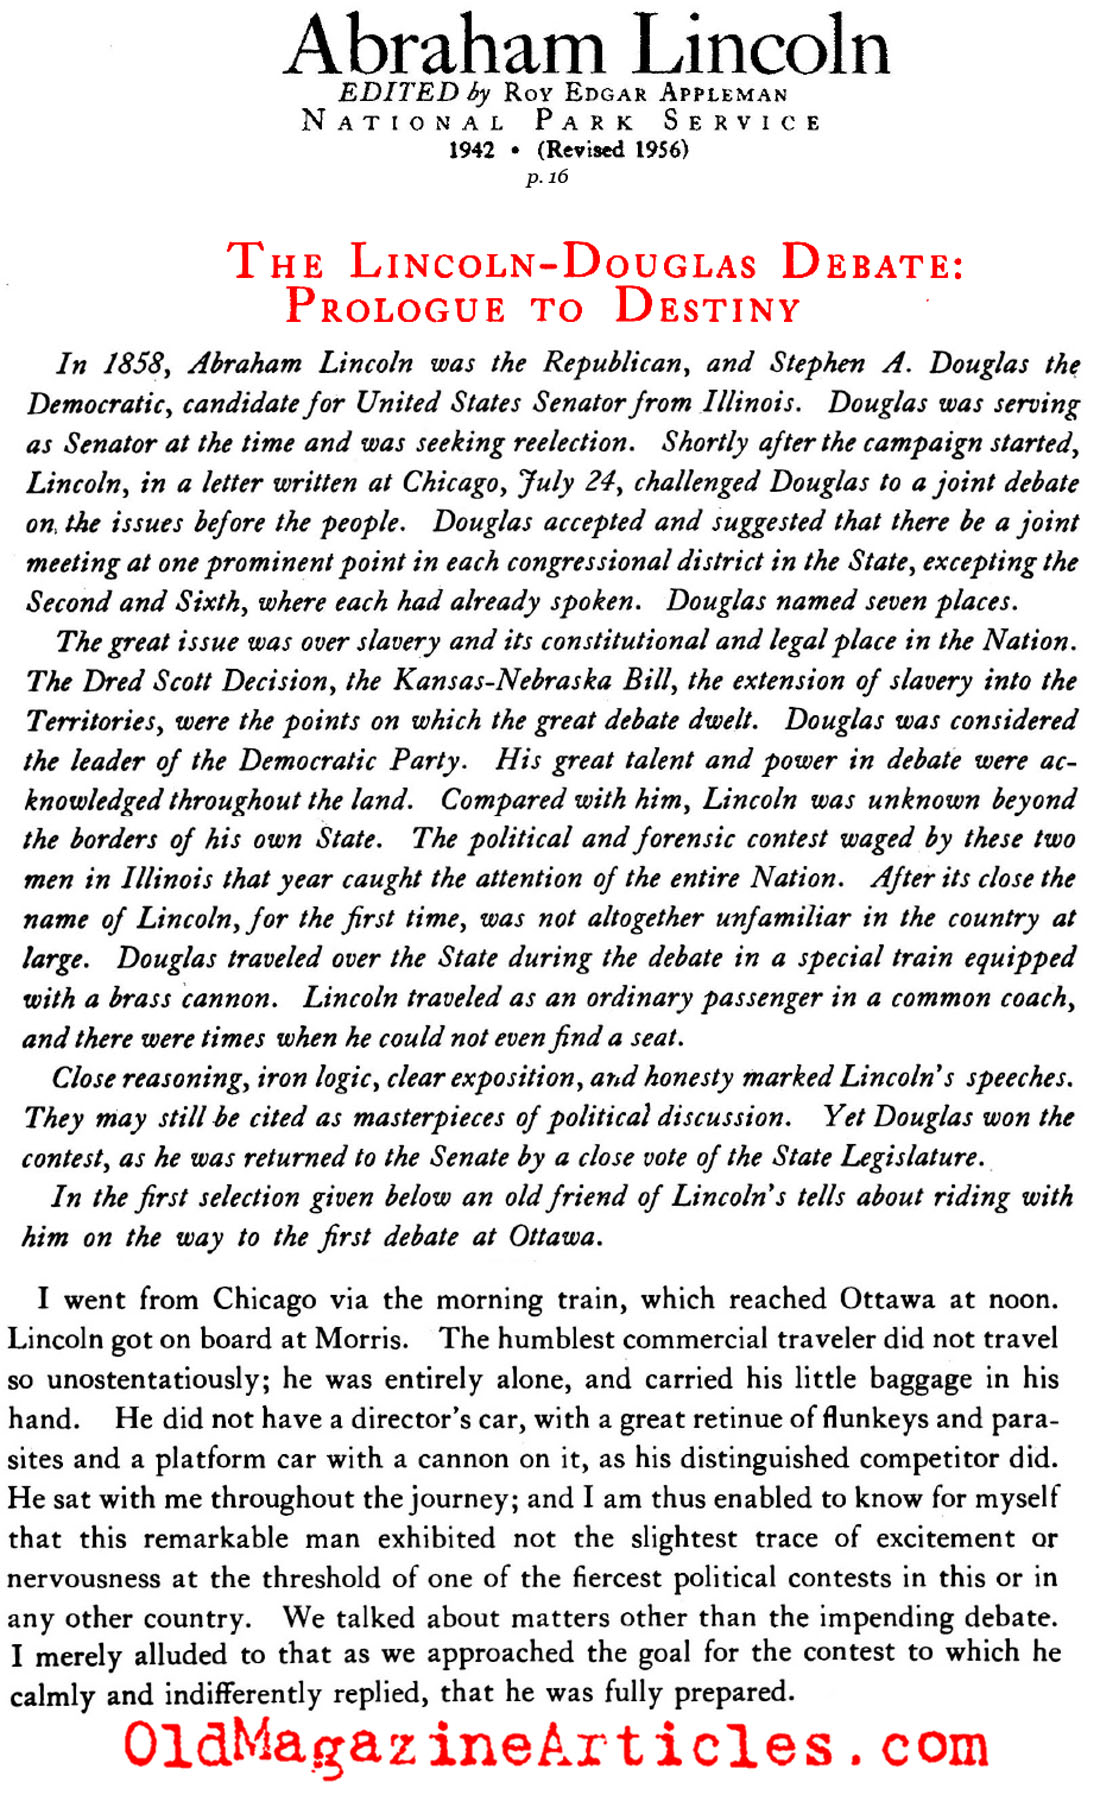 Traveling to the Lincoln - Douglas Debate (National Park Service, 1956)